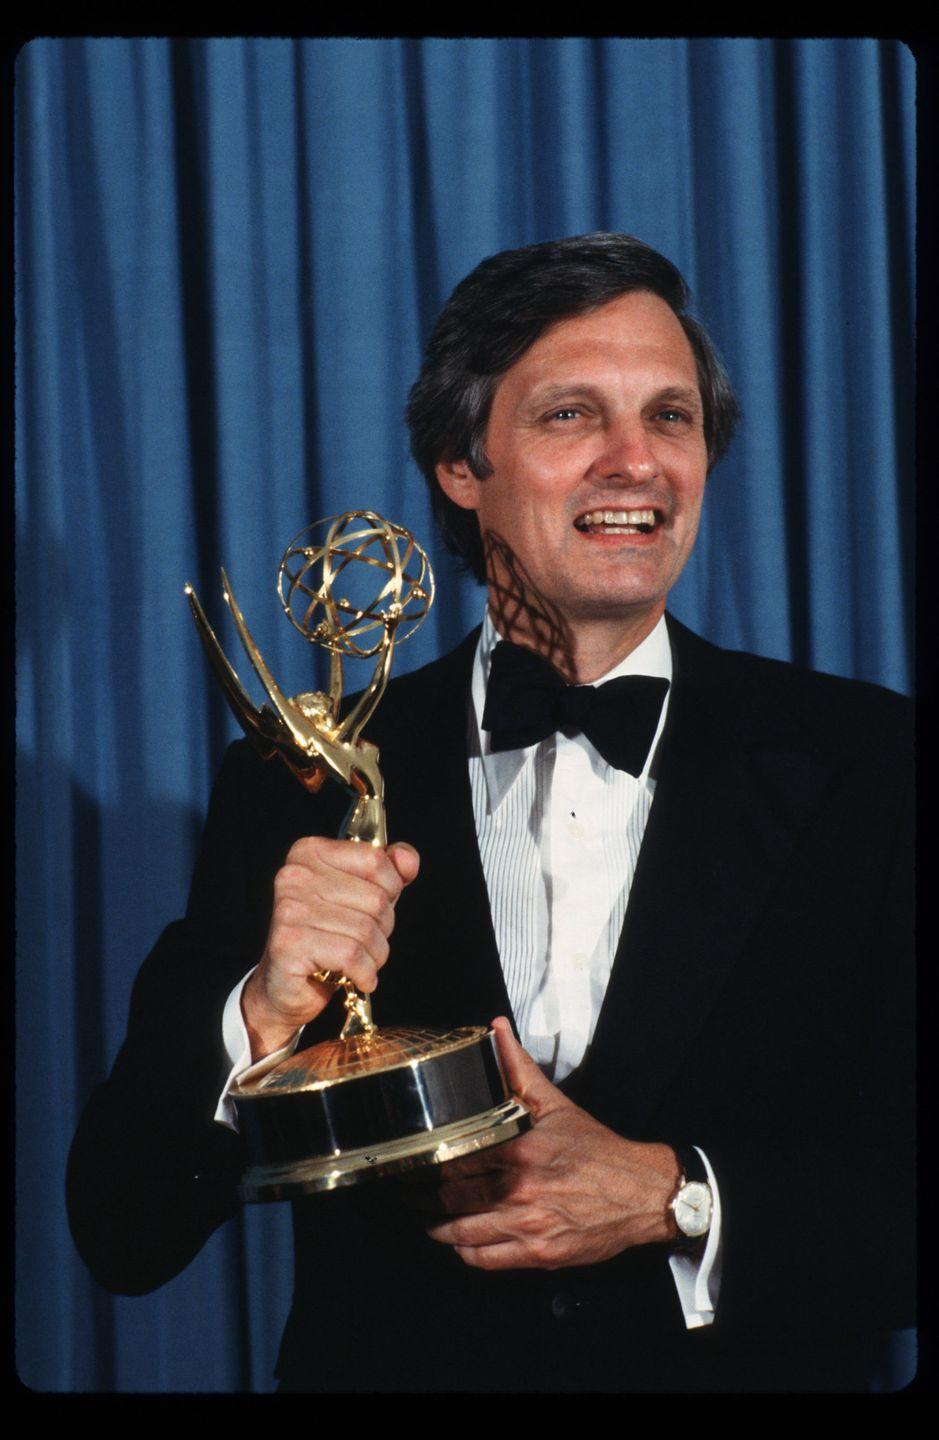 <p>When Alan Alda won an Emmy for writing an episode of <em>M*A*S*H</em>, he was so excited about it that the 43-year-old did a cartwheel as he made his way to the stage to accept. It was both adorable and amusing. <br></p>